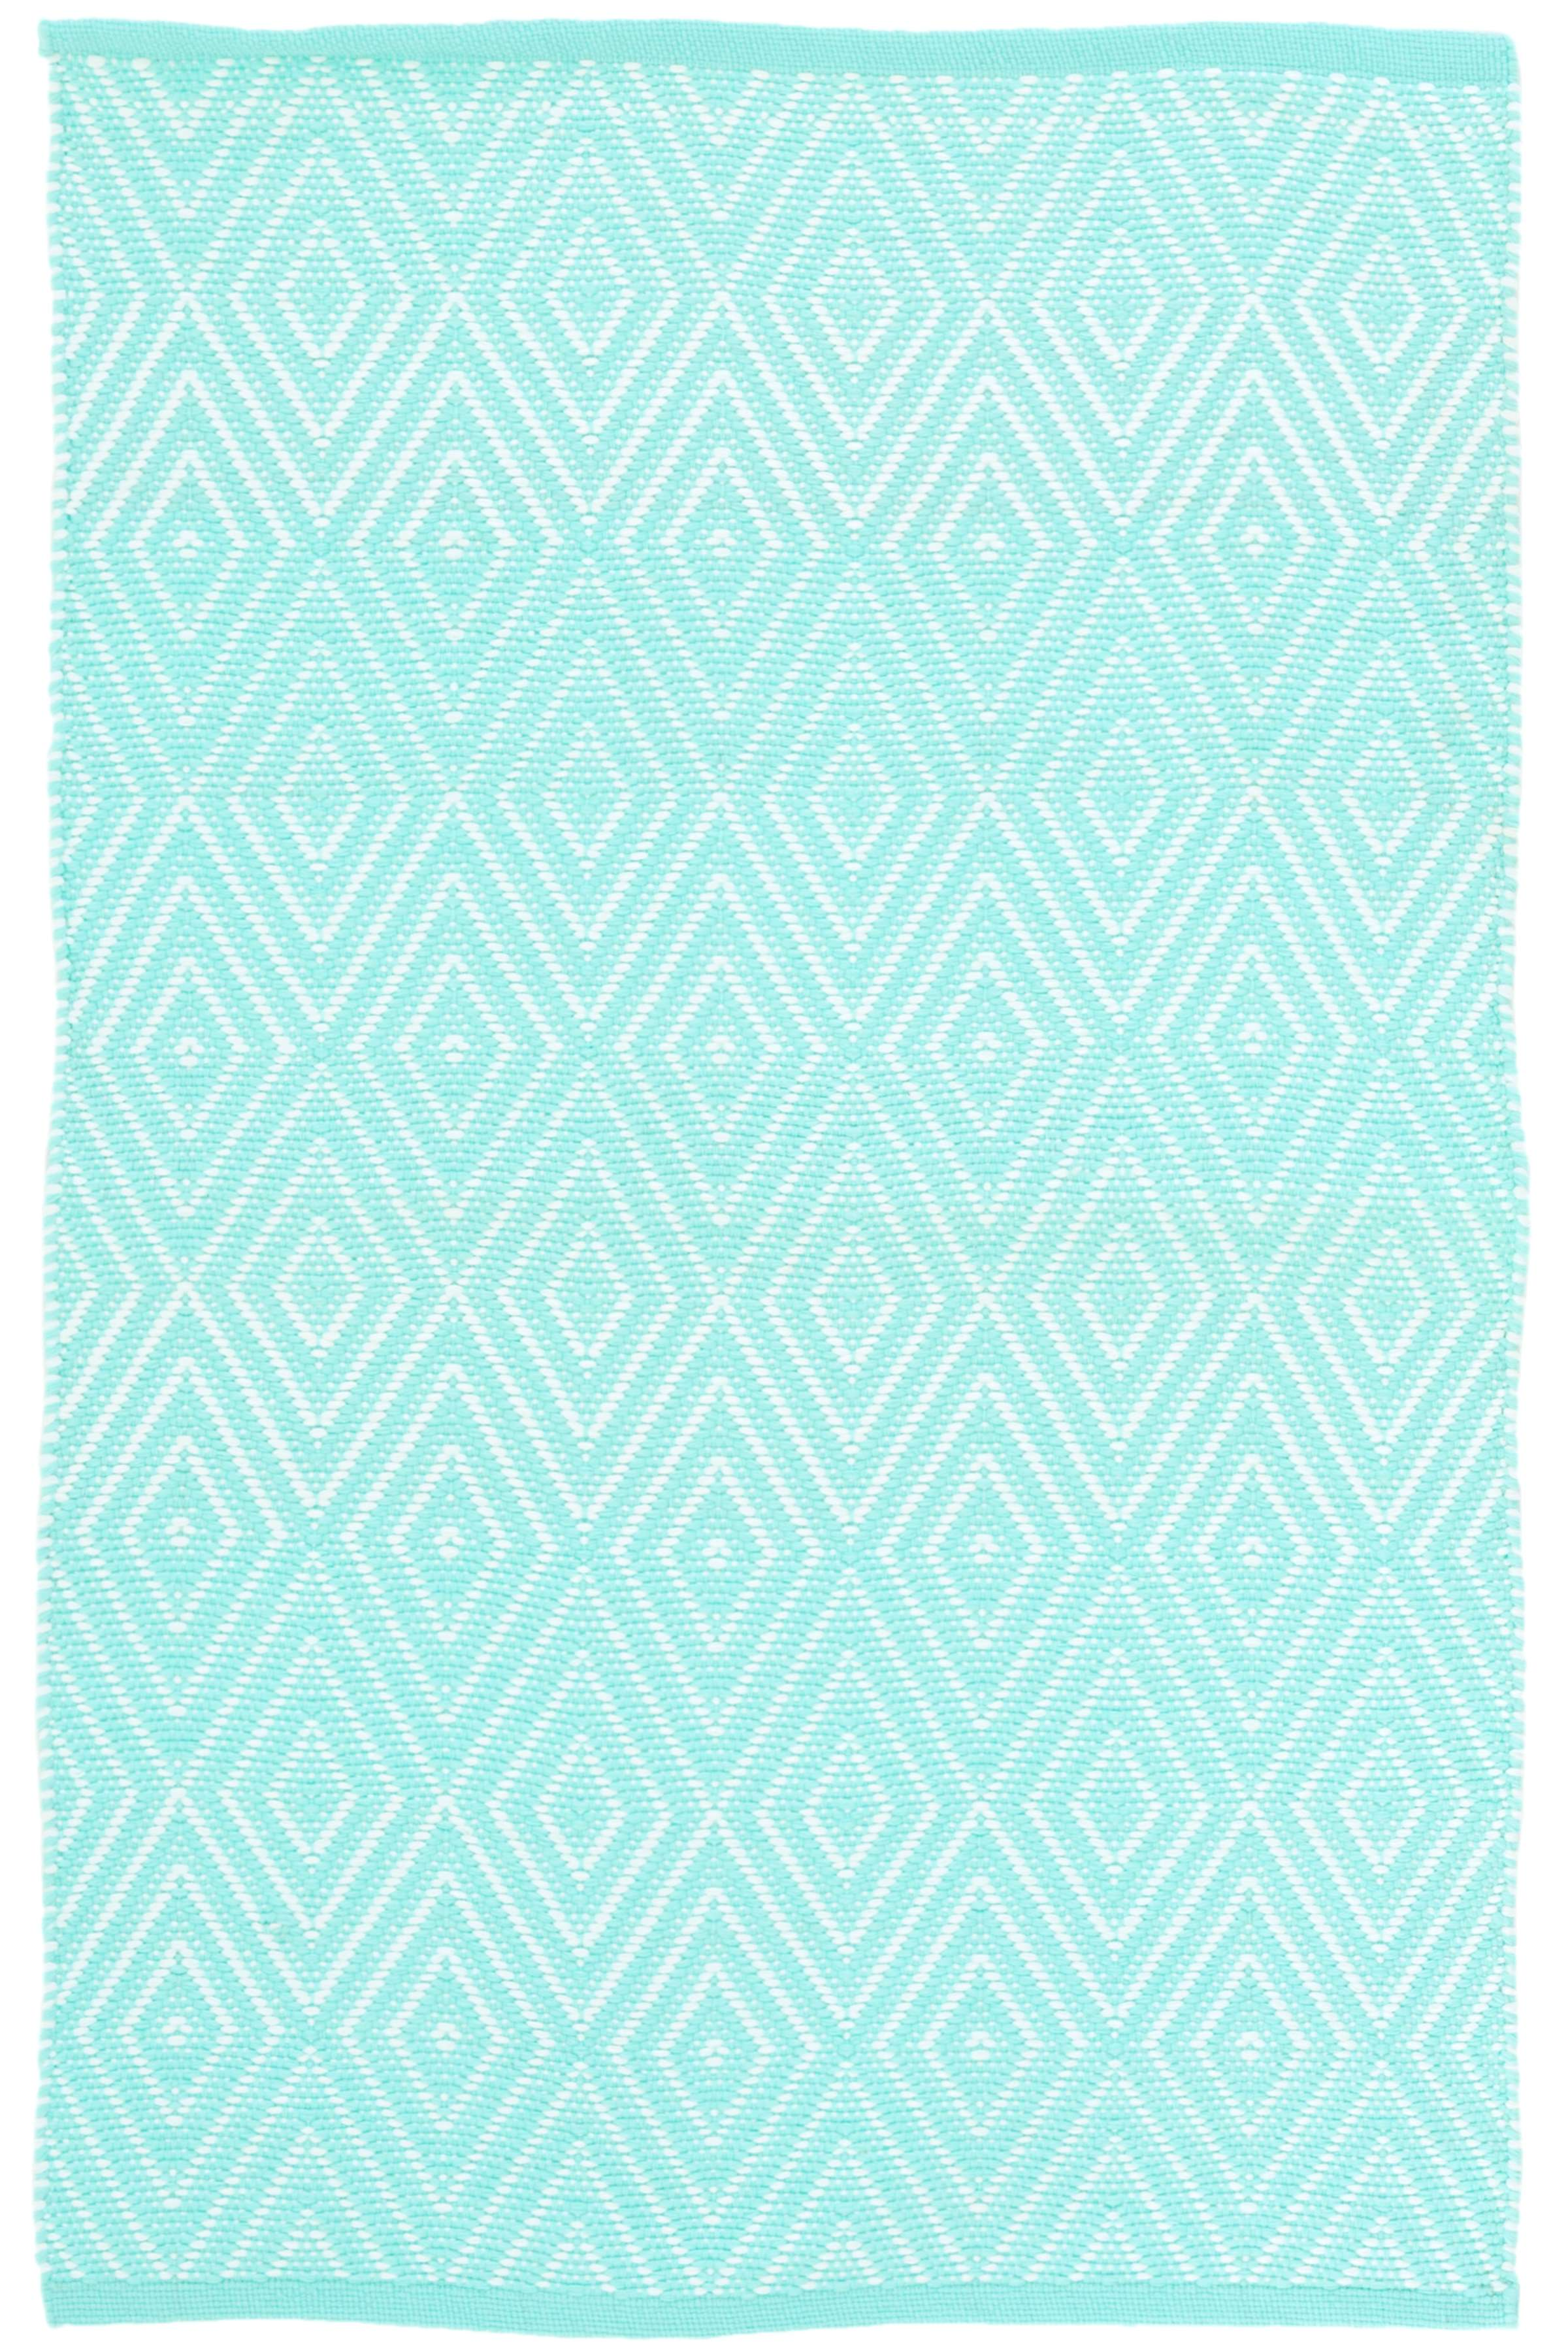 Diamond Aqua White Indoor Outdoor Rug The Outlet